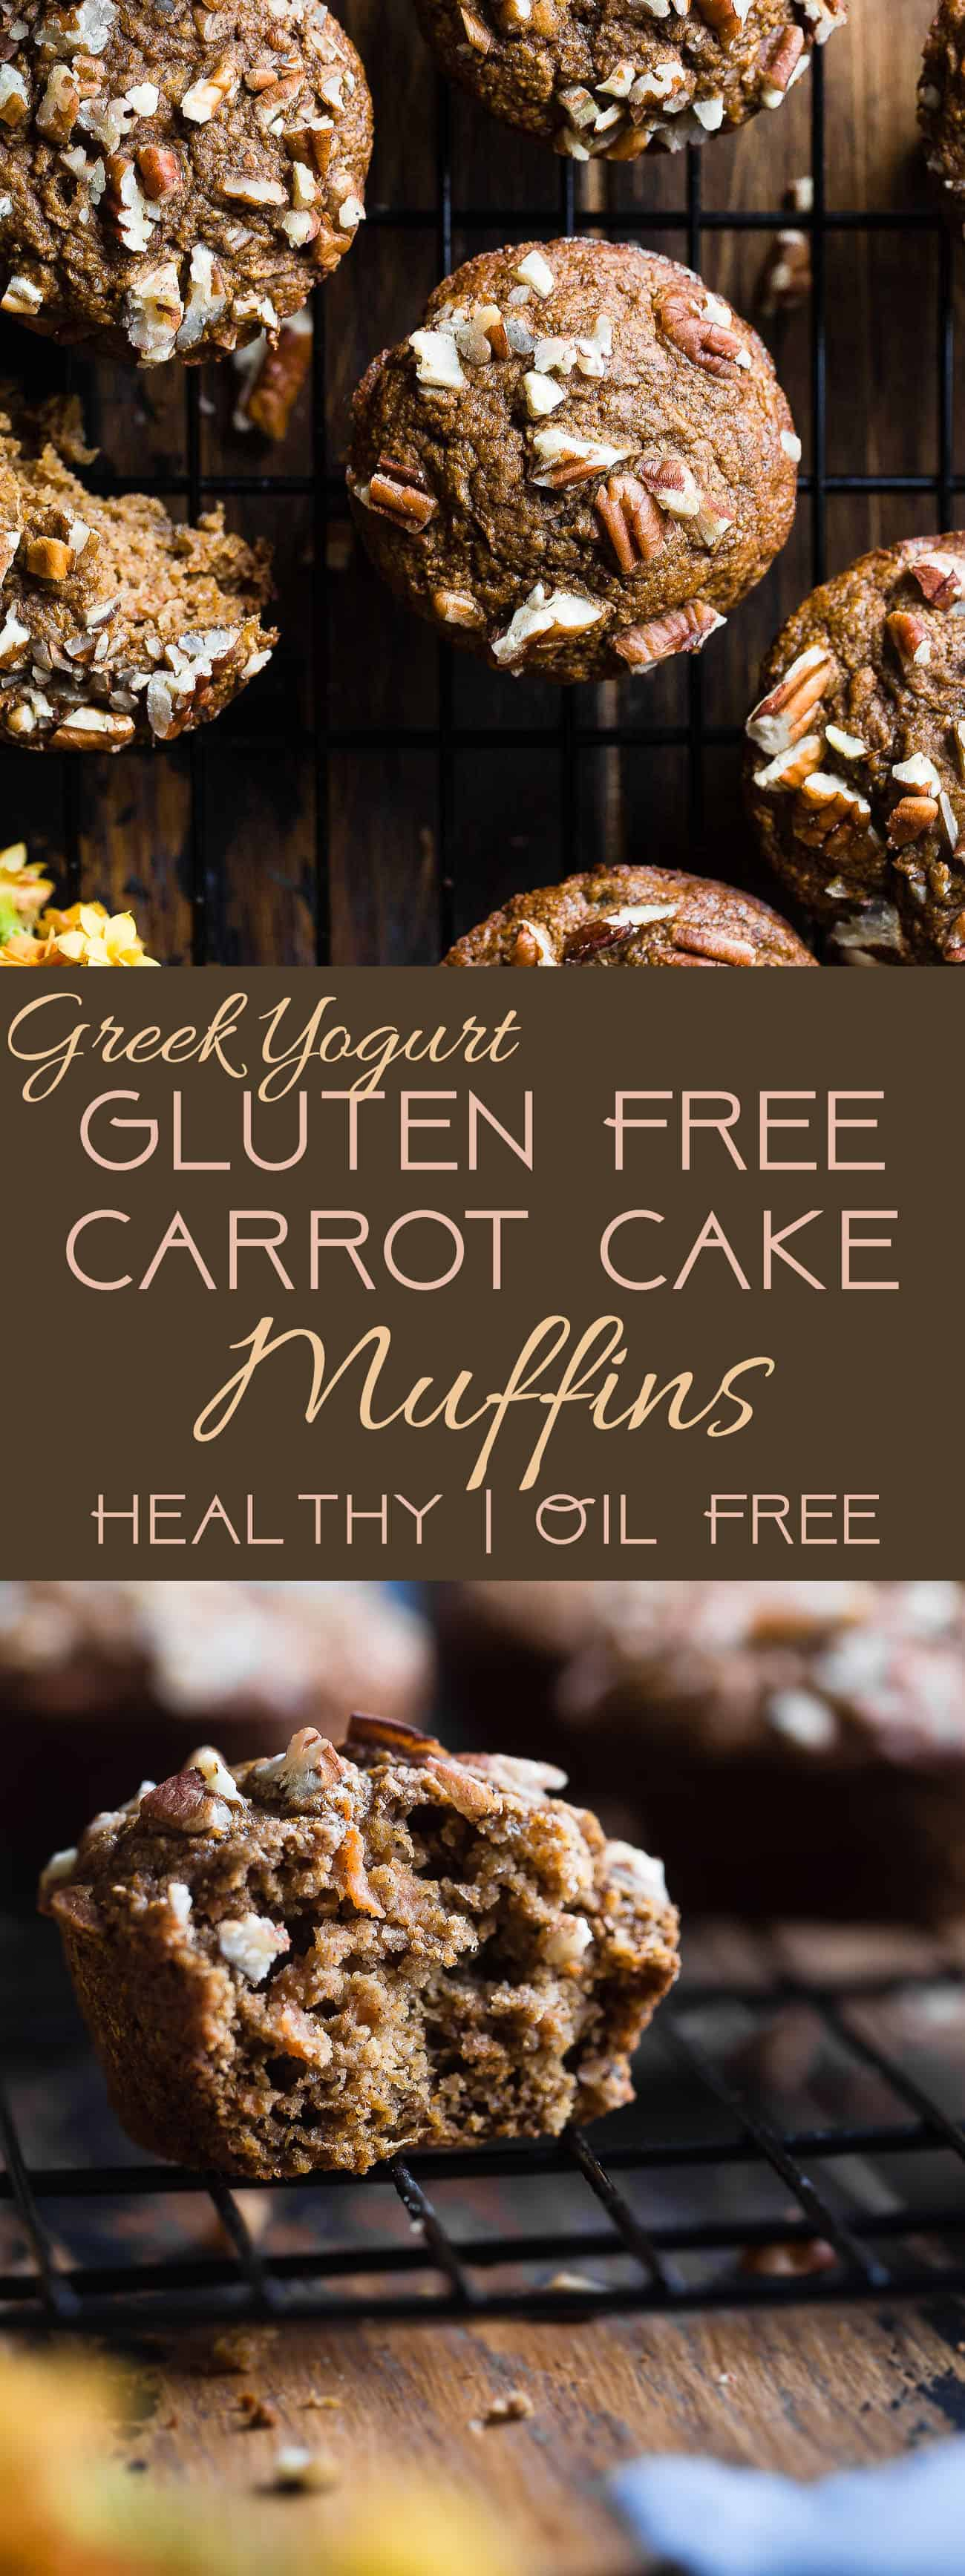 Gluten Free Healthy Carrot Cake Muffins - These easy carrot muffins are quick, simple and made from pantry-essential ingredients! Perfect for a quick breakfast or snack and use Greek yogurt instead of oil! | #Foodfaithfitness | #Muffins #Glutenfree #Healthy #Carrotcake #Greekyogurt